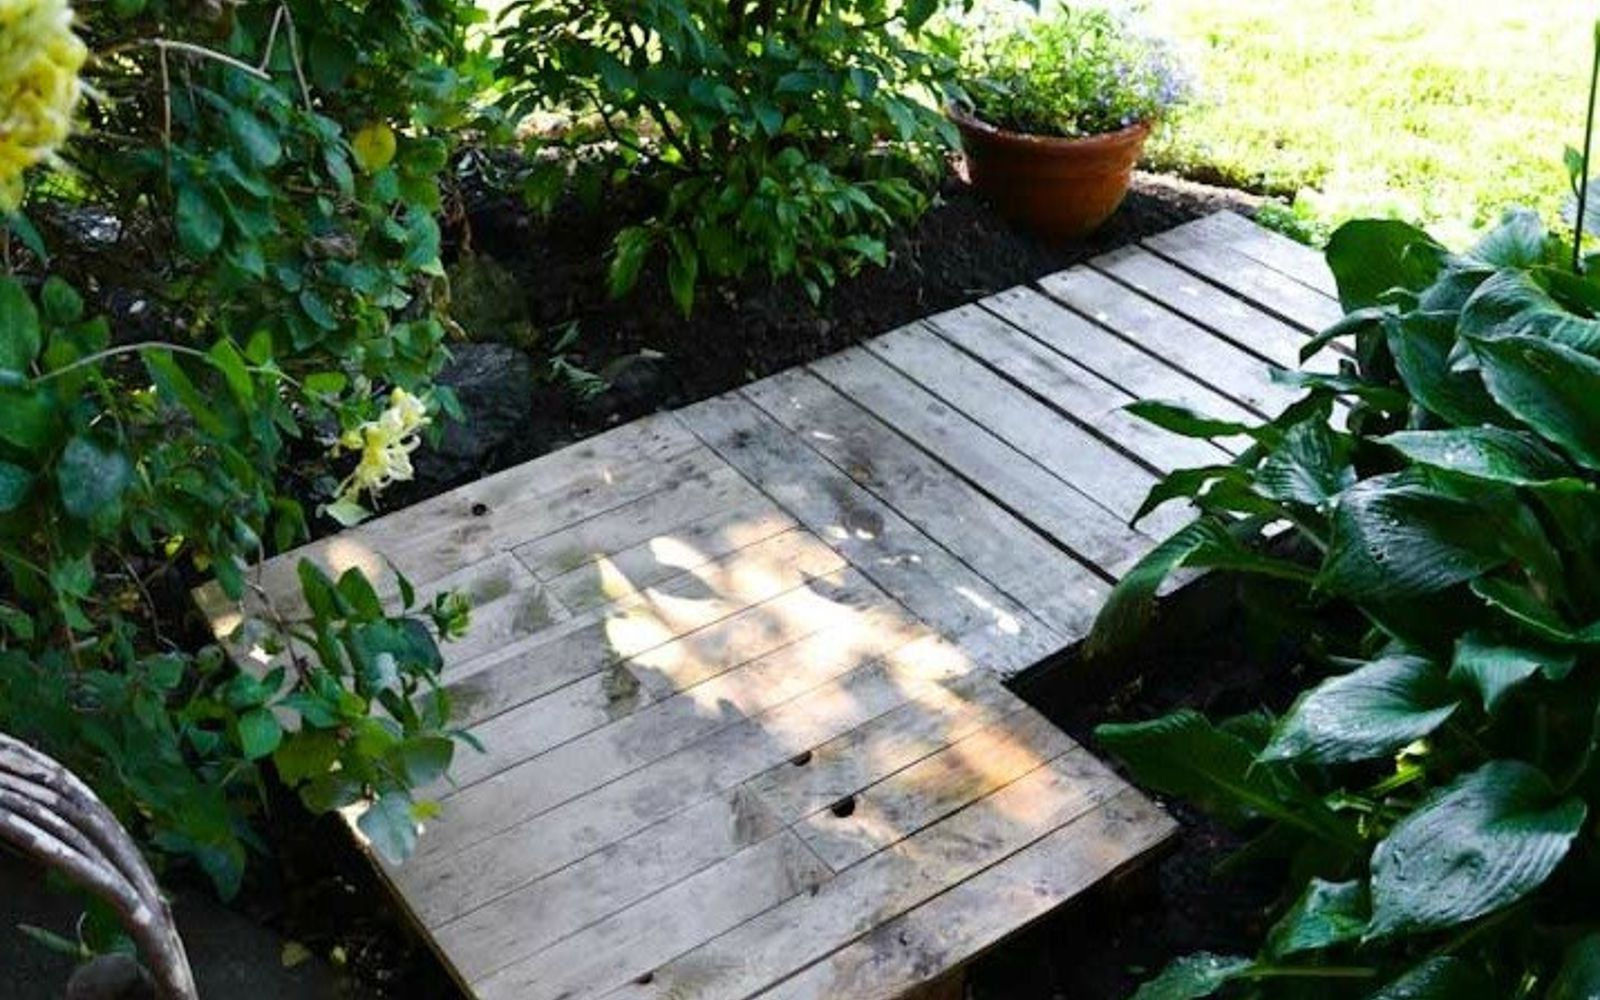 s 9 budget ways to make your walkway look even better than last year, concrete masonry, gardening, Use full pallets for an instant pathway